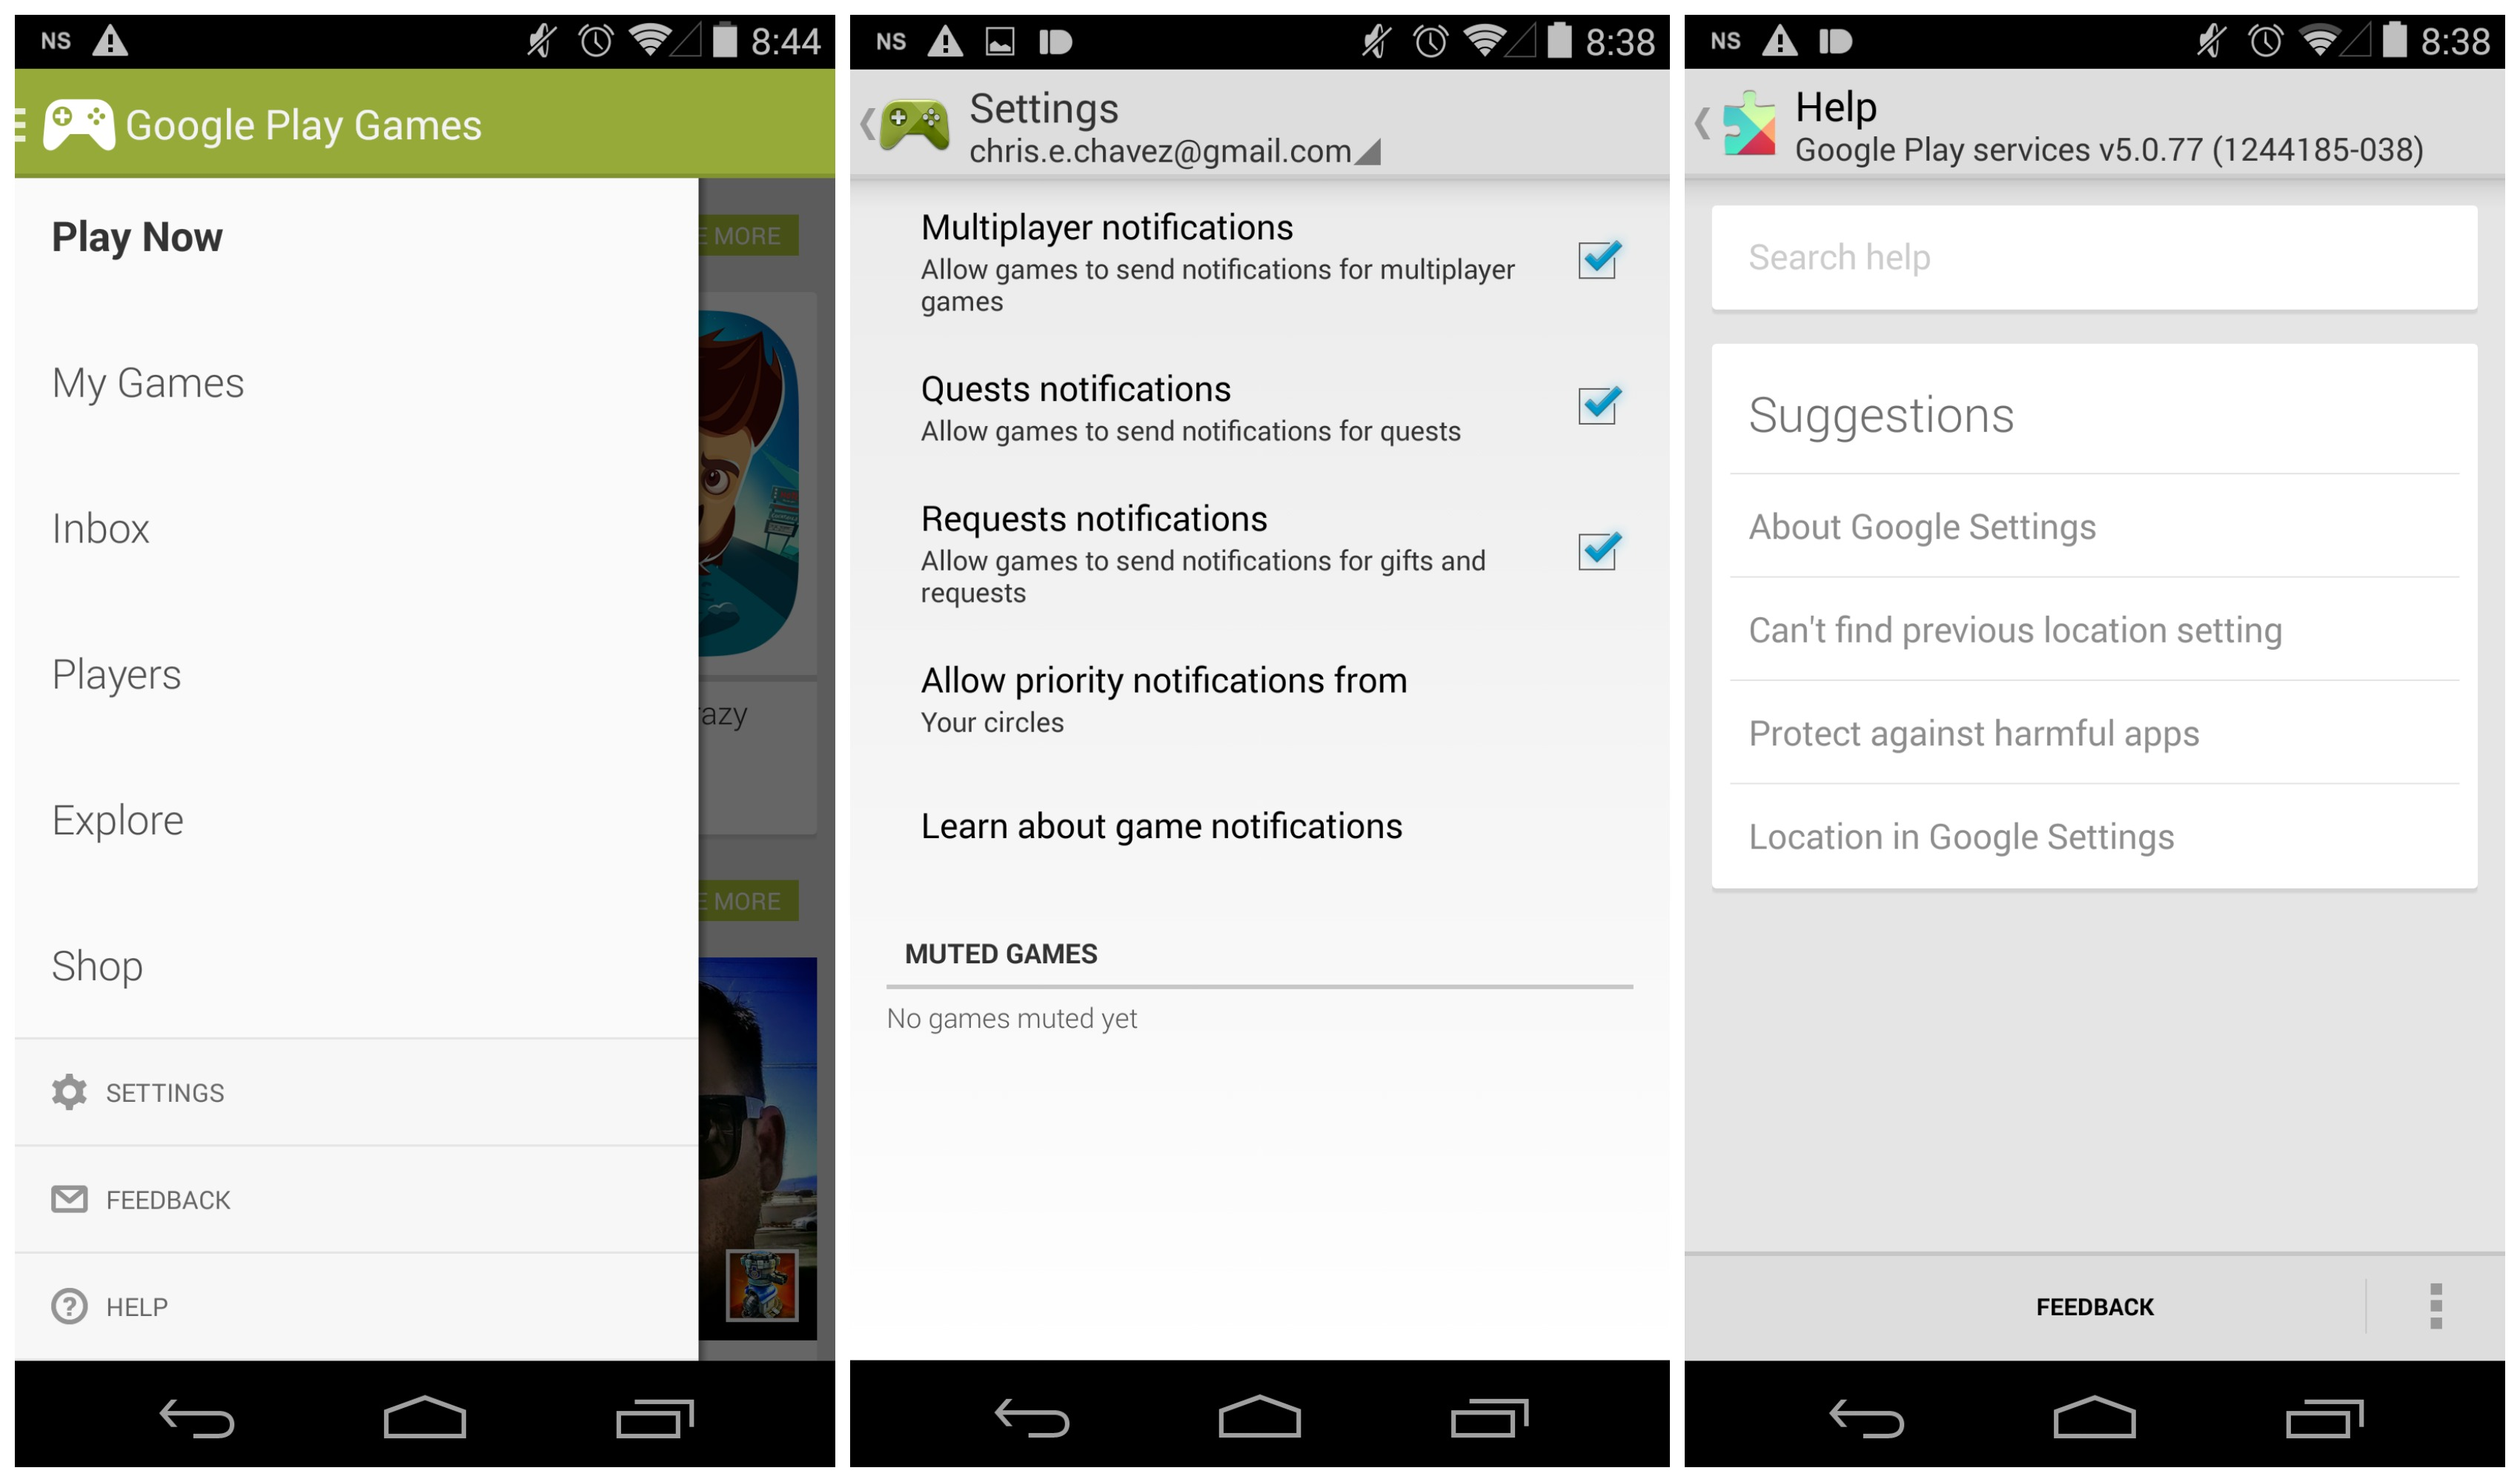 Google Play Games Services 5.0